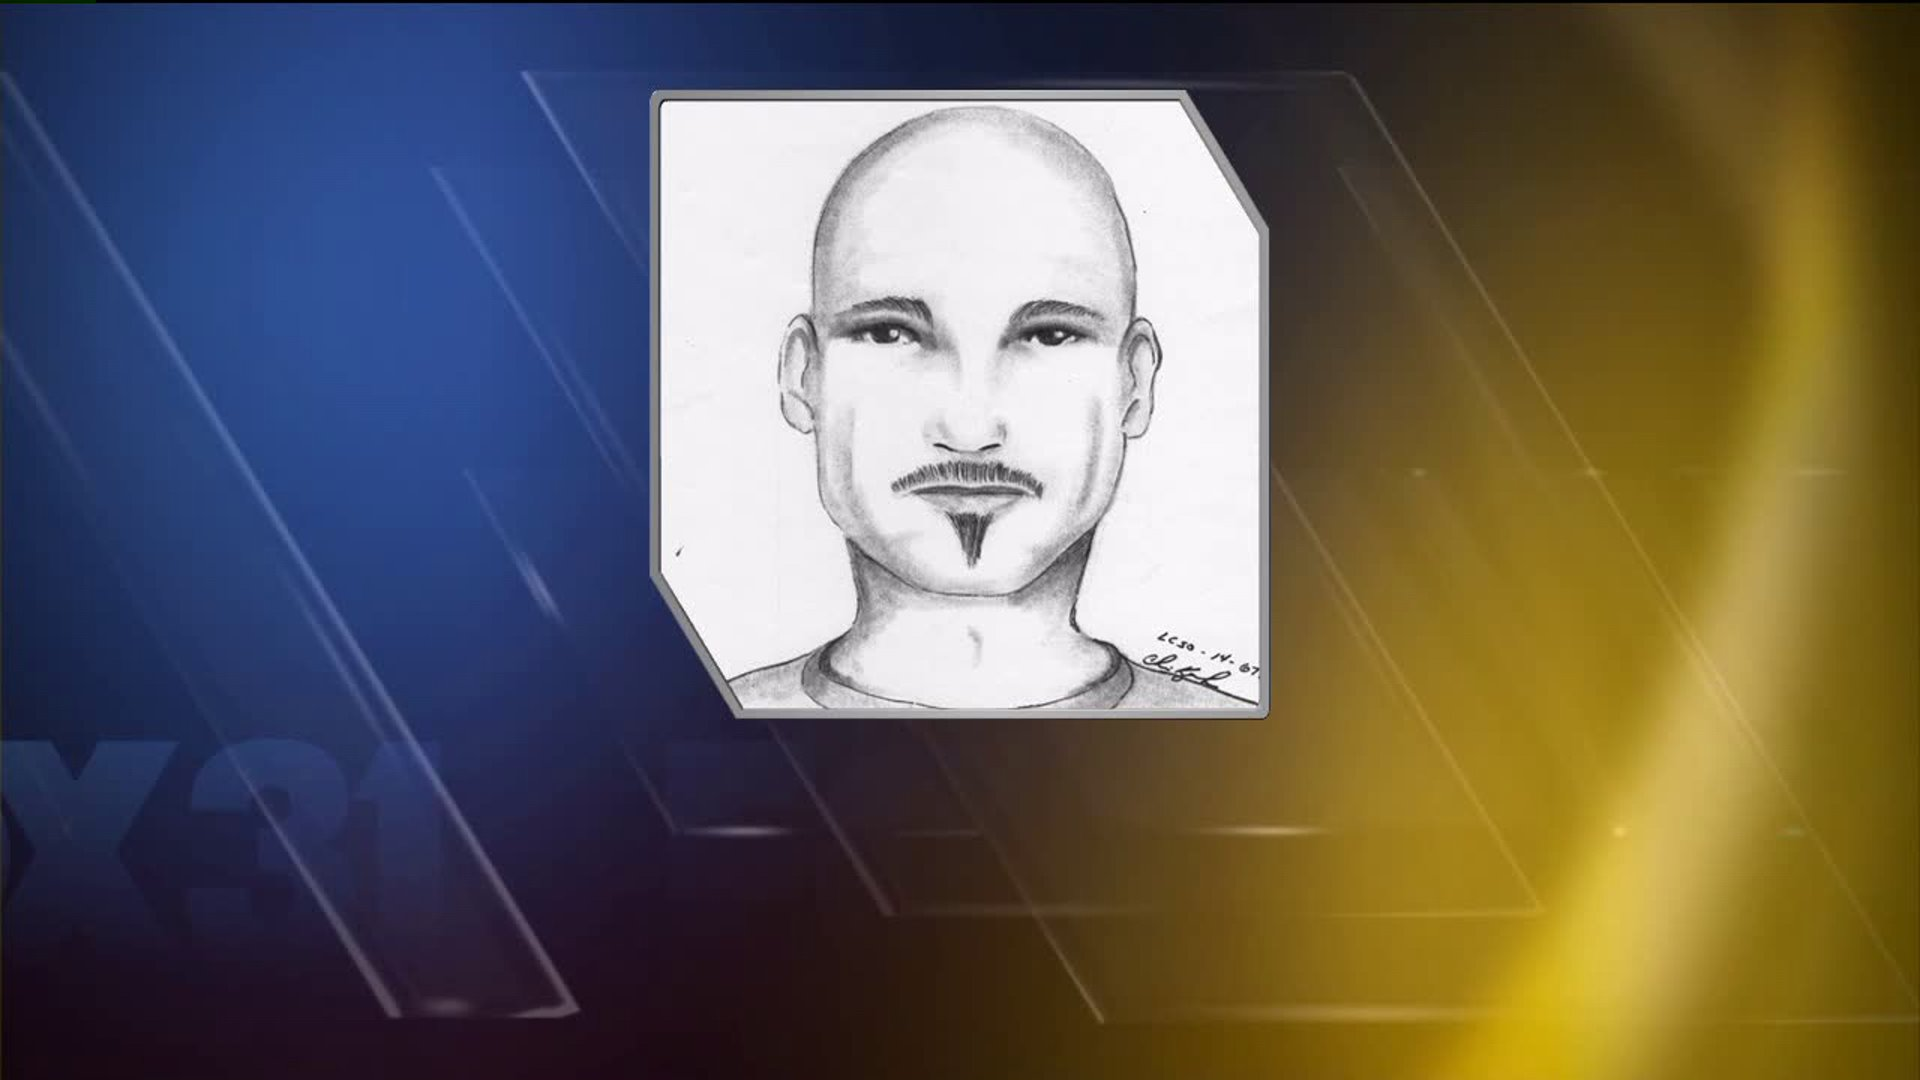 Composite of man suspected in attacks on women in Fort Collins area